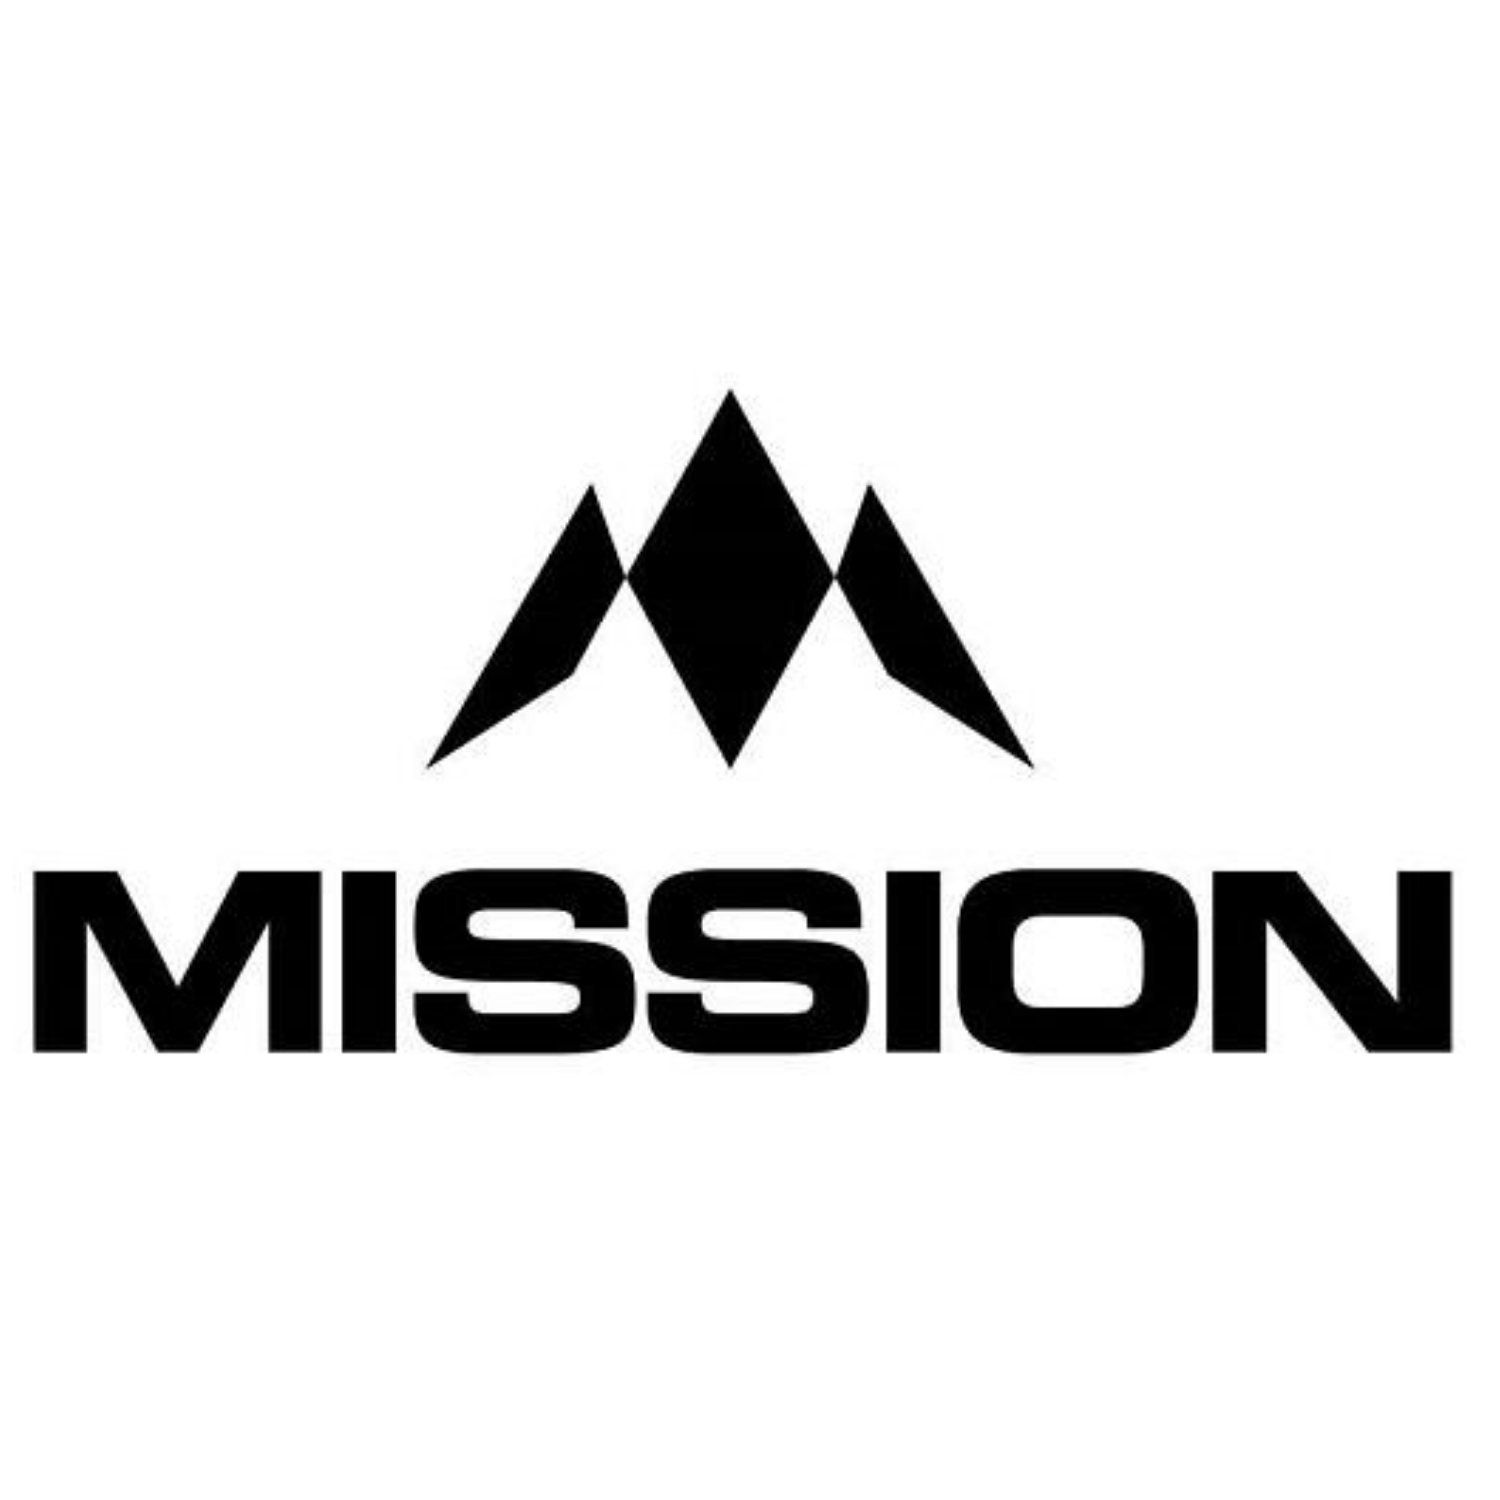 missionlogo.png